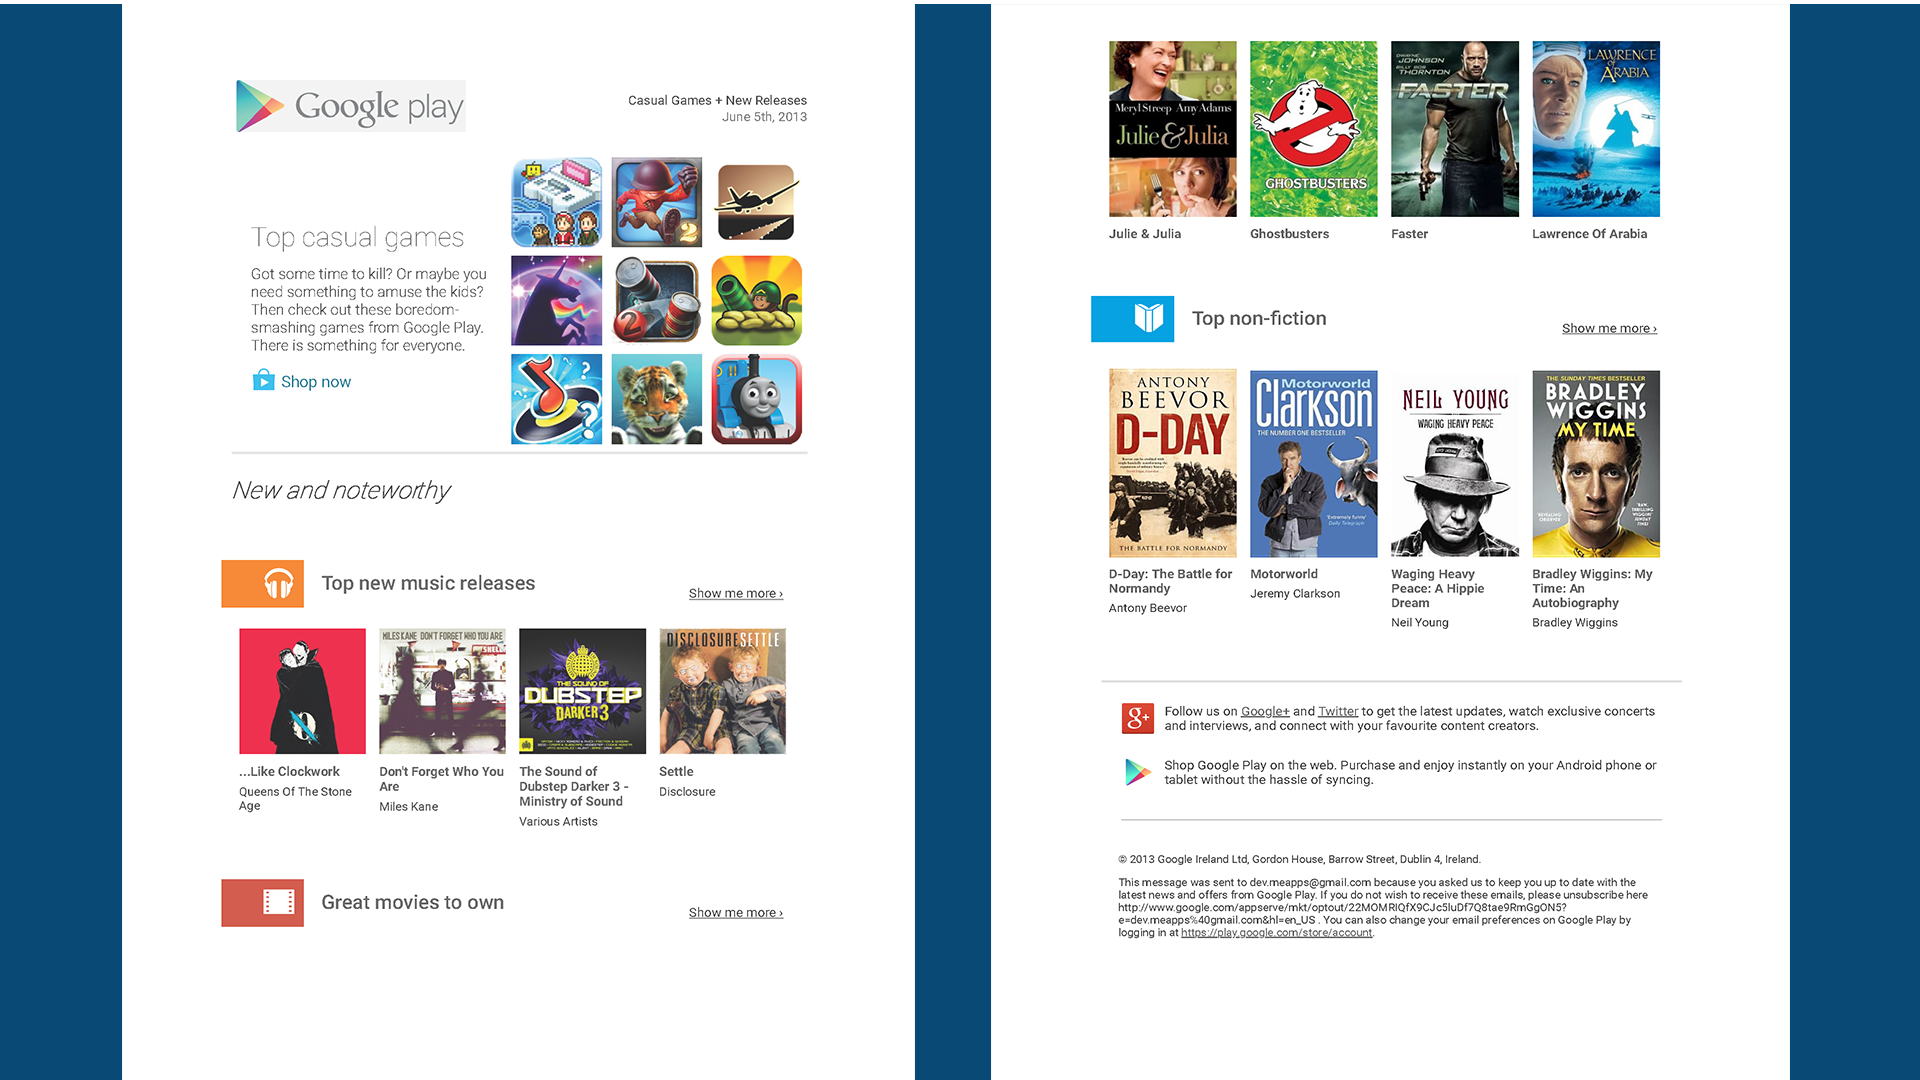 Original Google Play web page for comparison